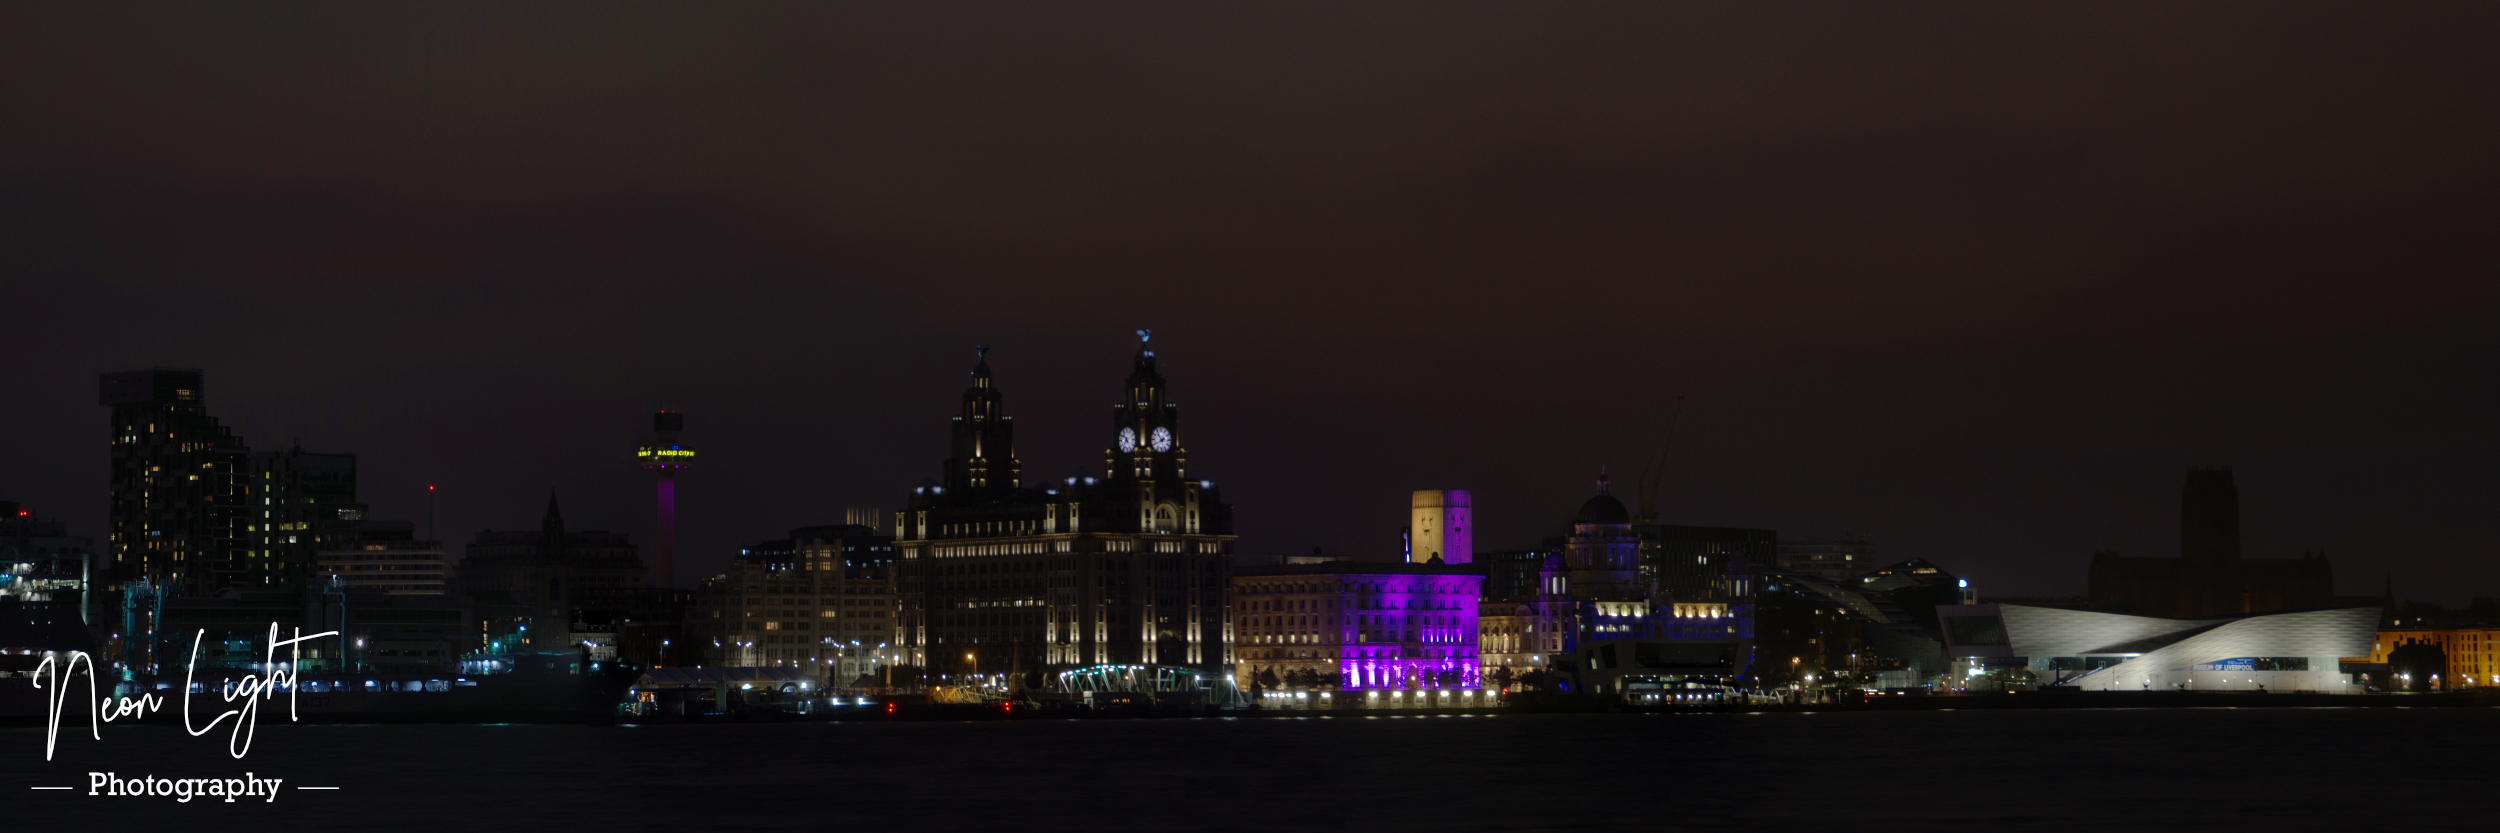 Liverpool Skyline by Night